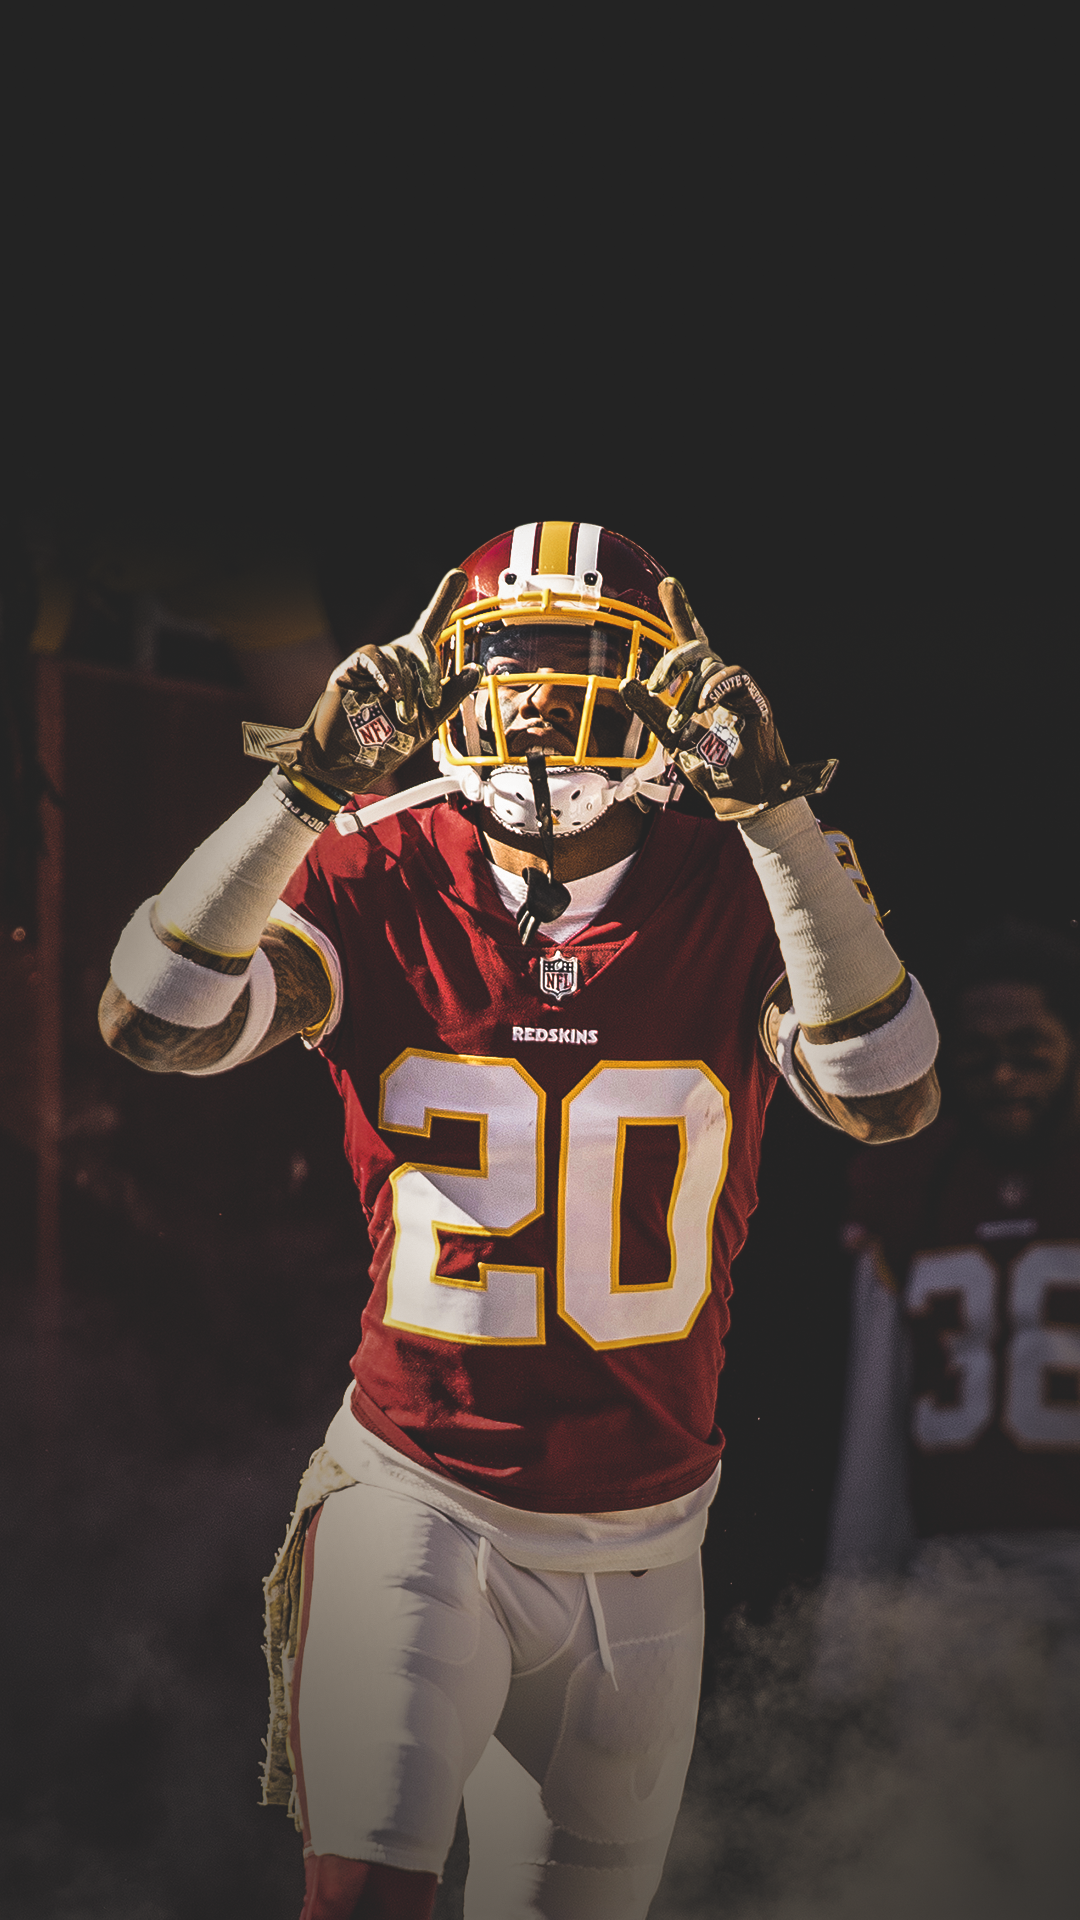 Redskins Wallpapers   Top Redskins Backgrounds   WallpaperAccess 1080x1920